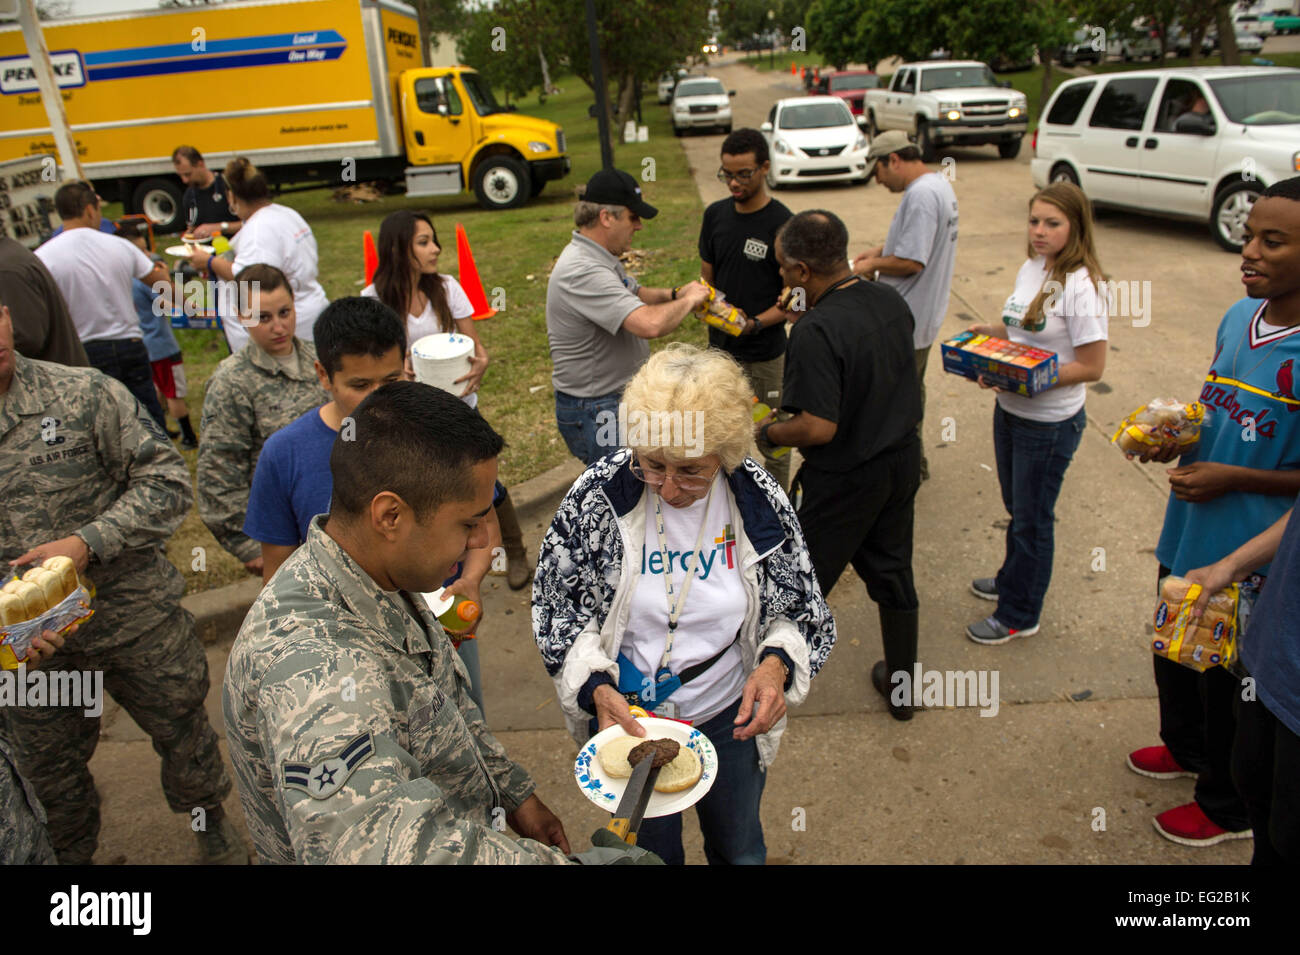 Airman 1st Class Edgar Aguilar serves food to disaster relief volunteers in Moore, Okla., May 23, 2013. Aguilar - Stock Image